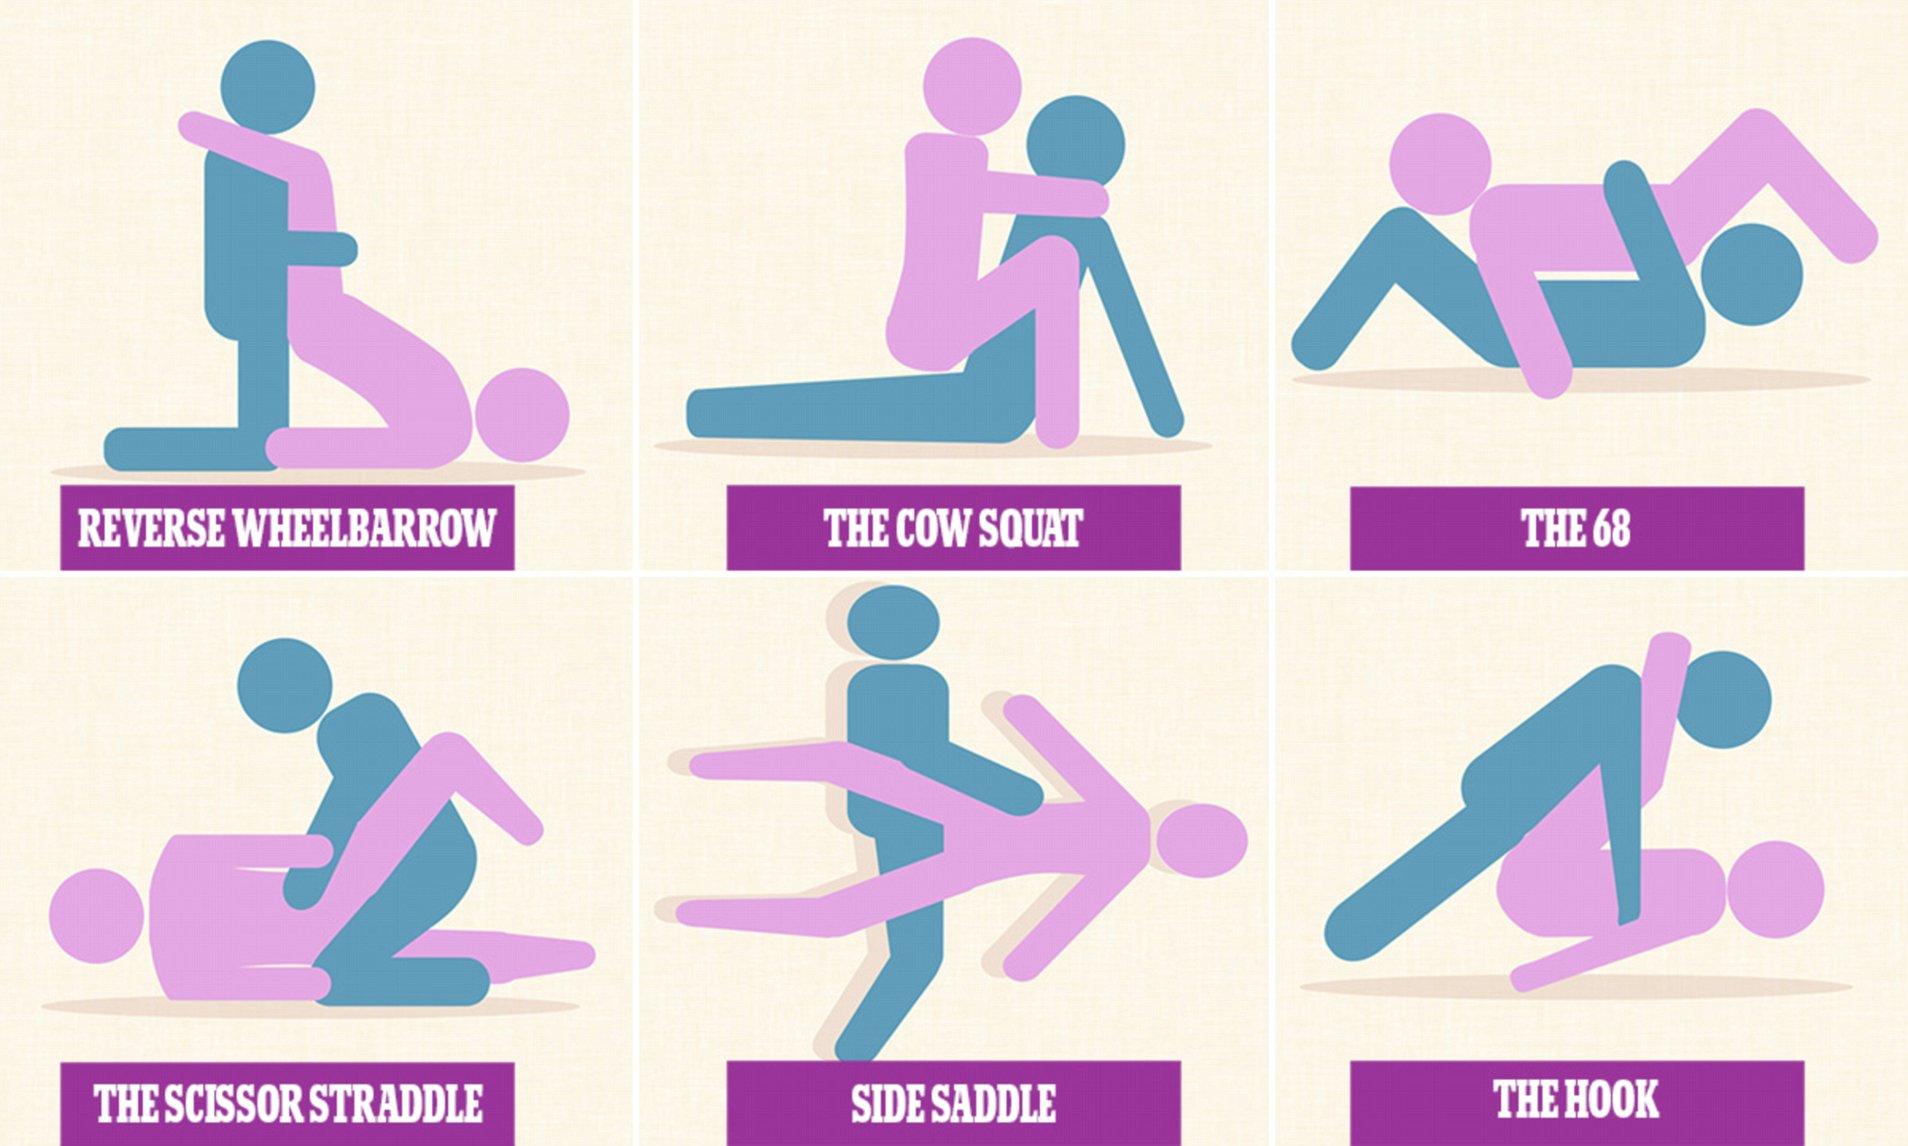 missionary of the position variations